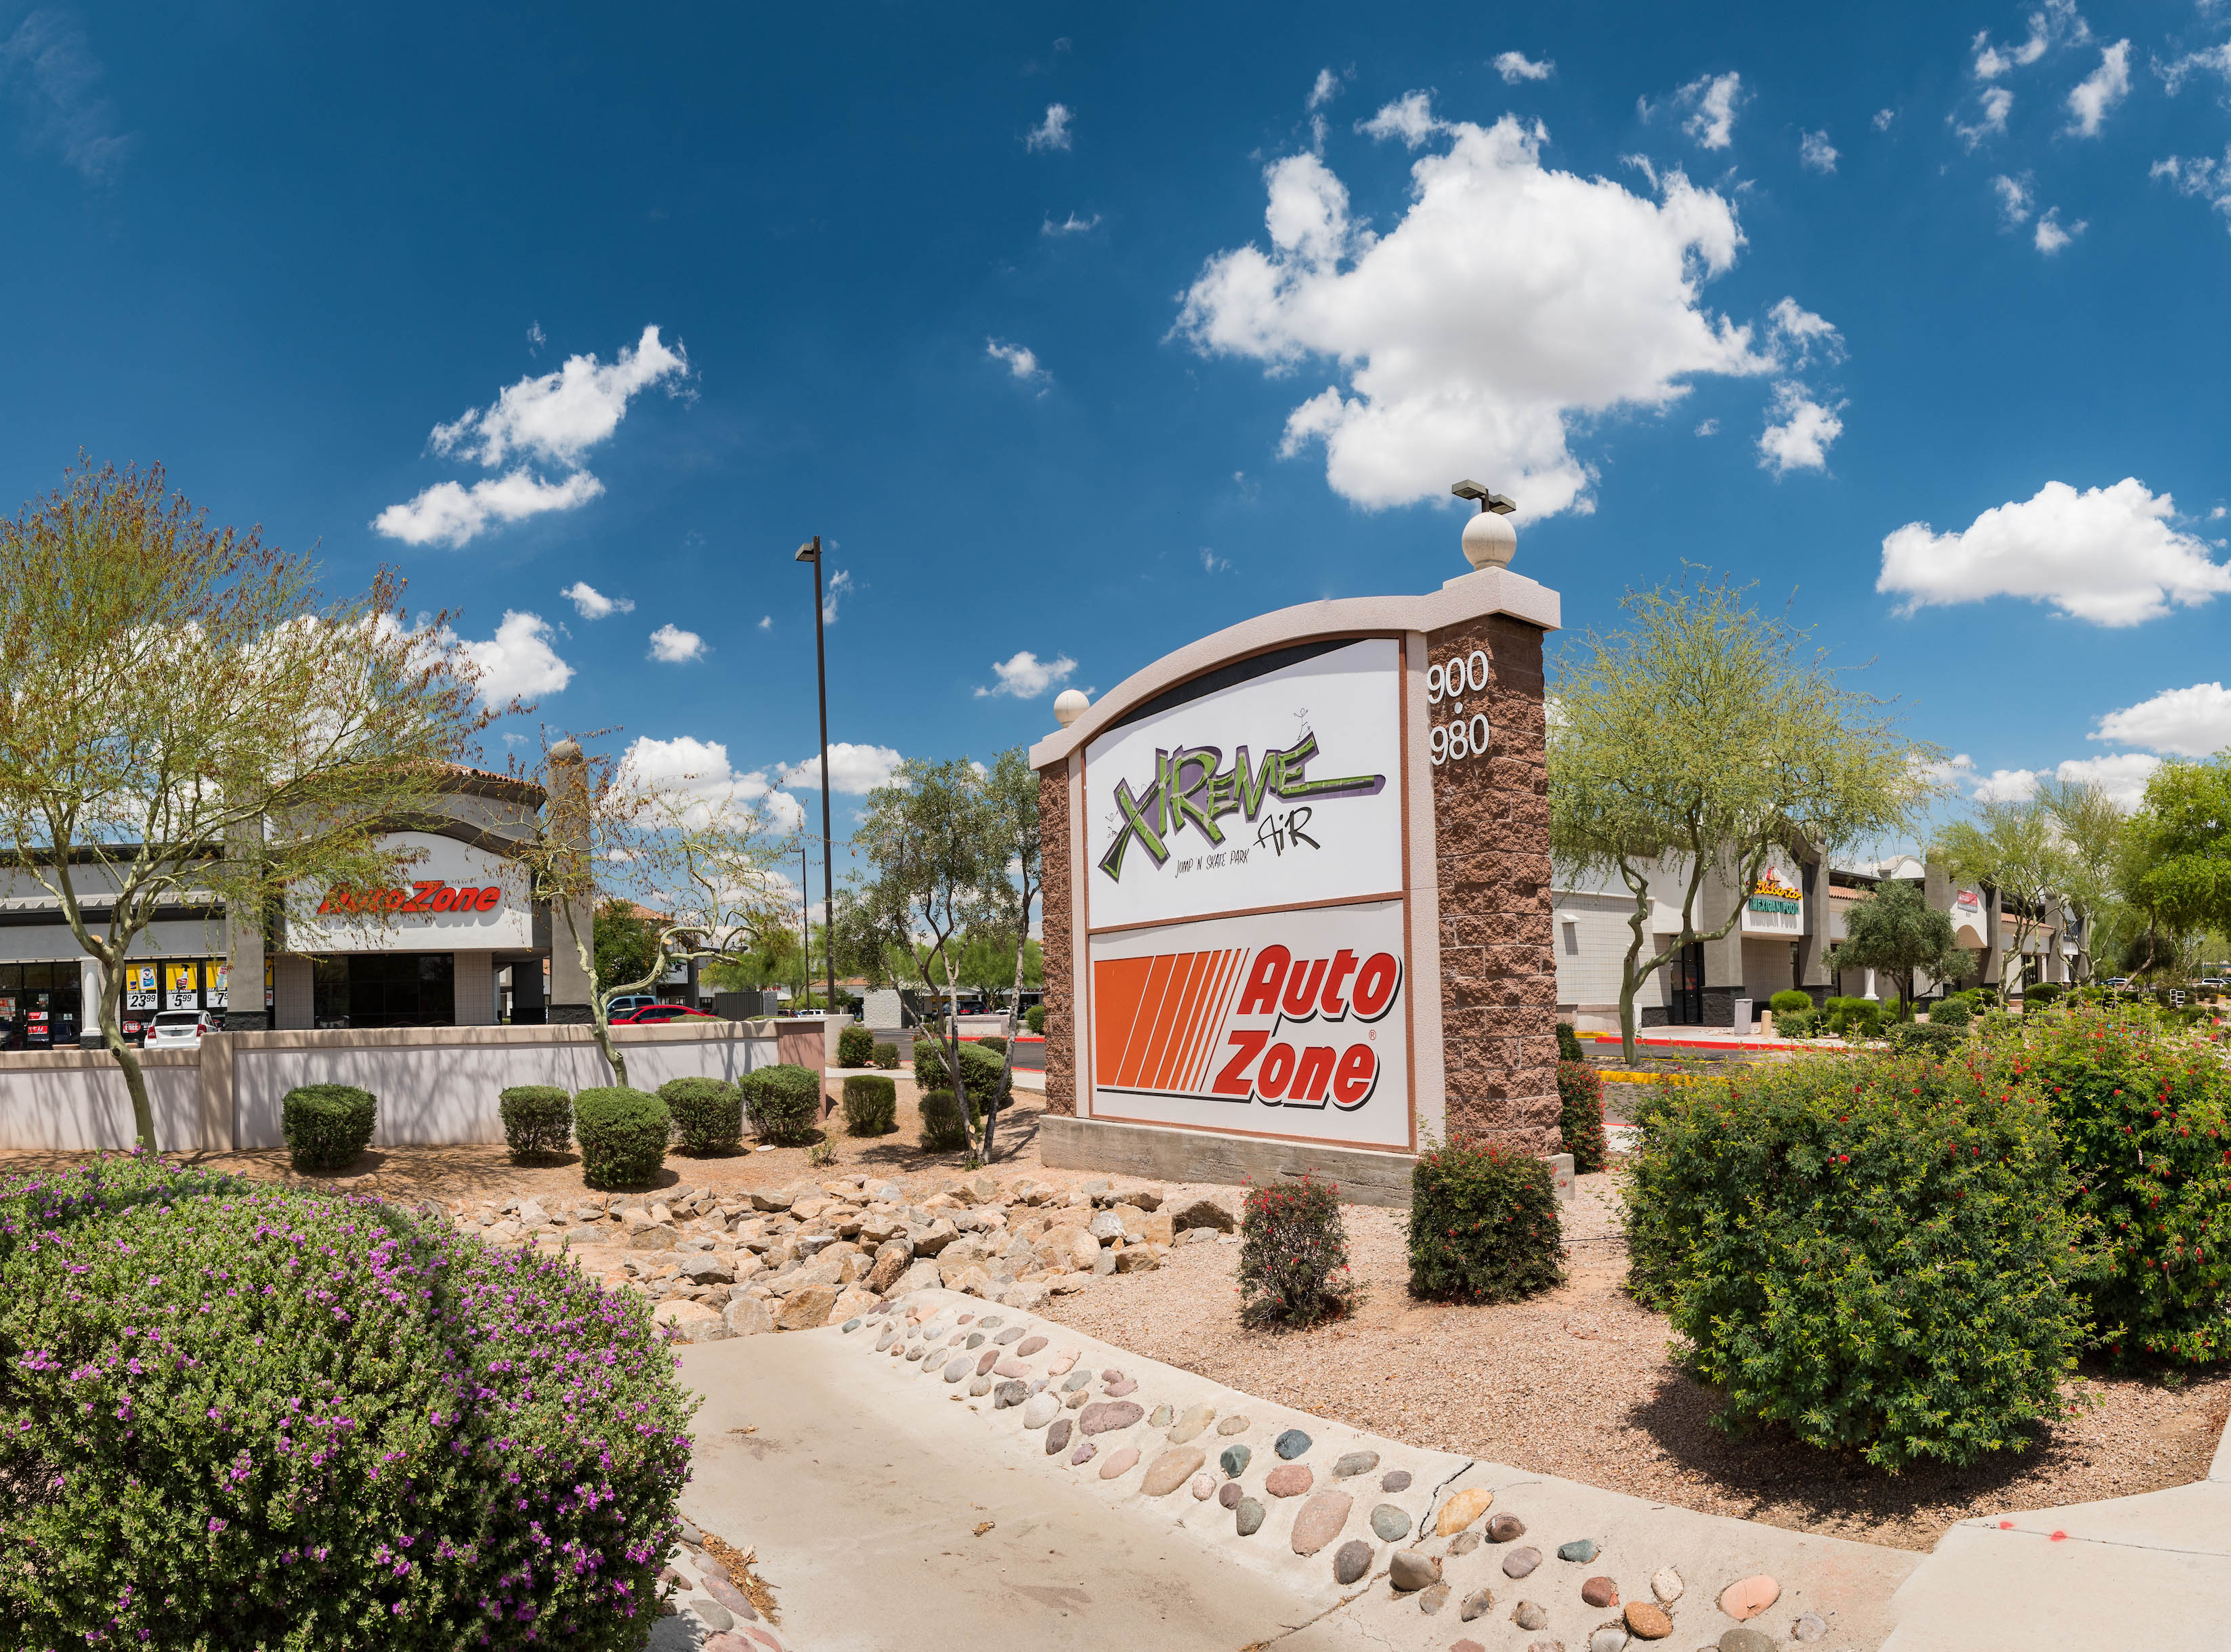 CBRE Announces Sale of Two Metro Phoenix-Area Retail Investment Properties for $5.5 Million